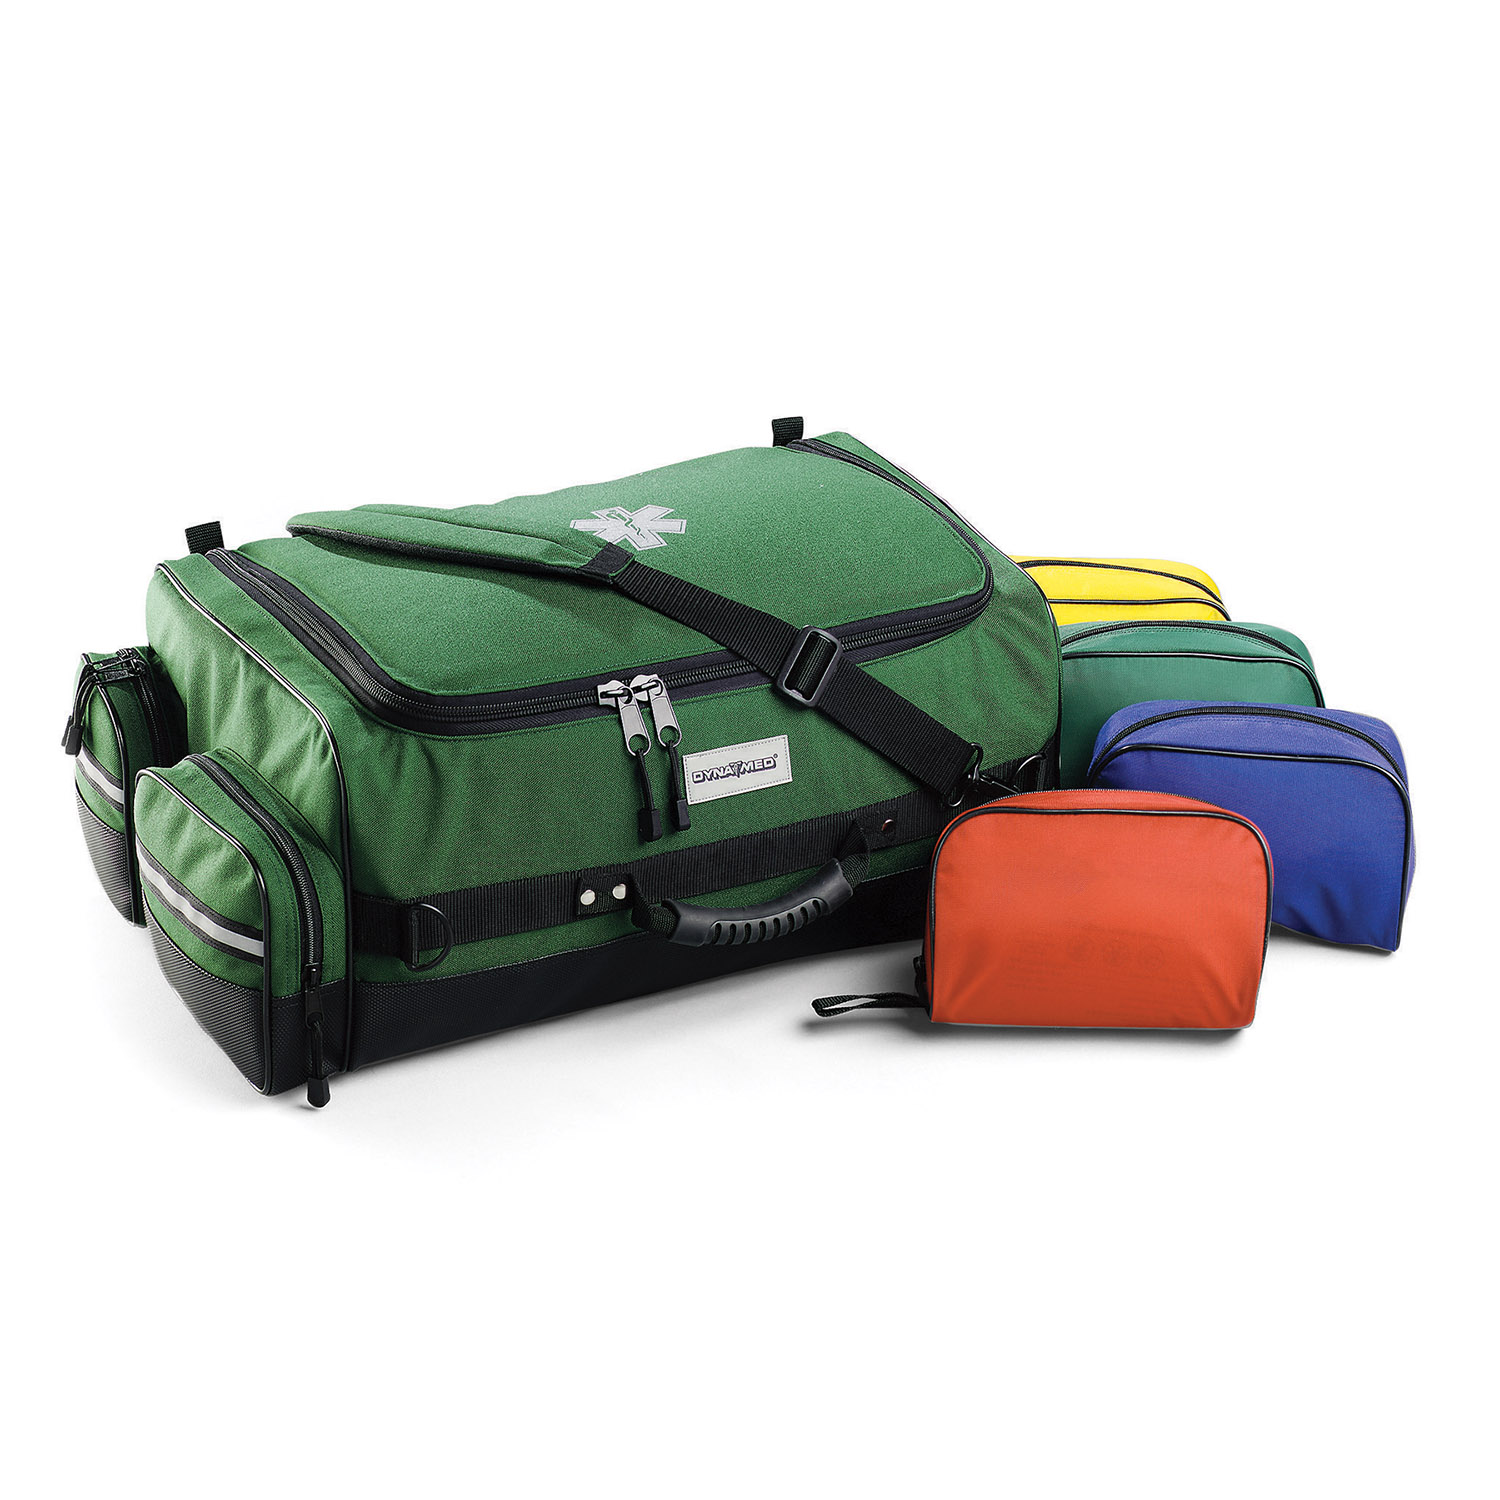 Dyna Med Trauma/O2 Access ALS Complete Kit